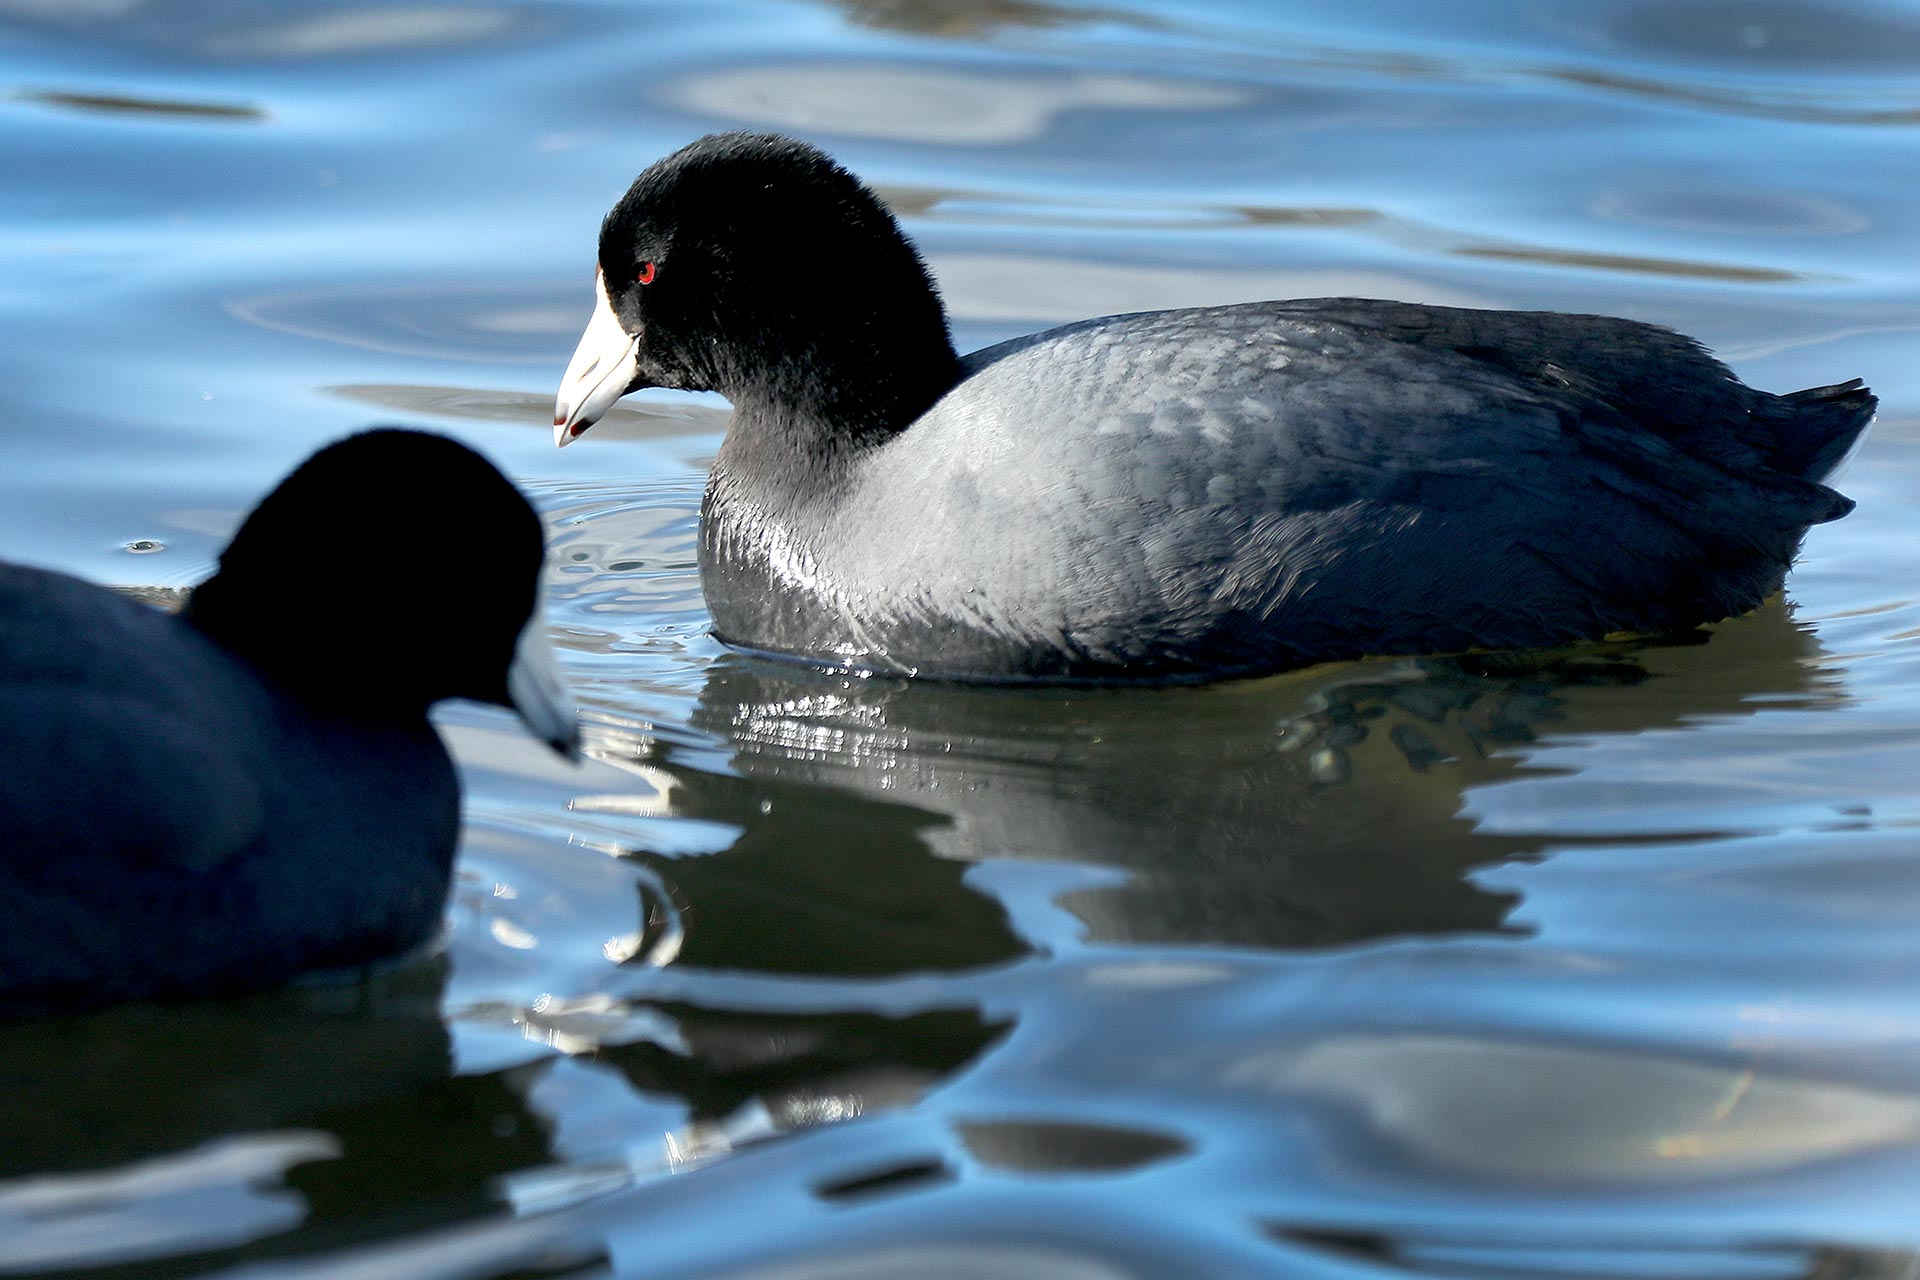 A couple of American coots also known as a mud hen searches for a meal at Beaverdam Park Friday February 14, 2020.